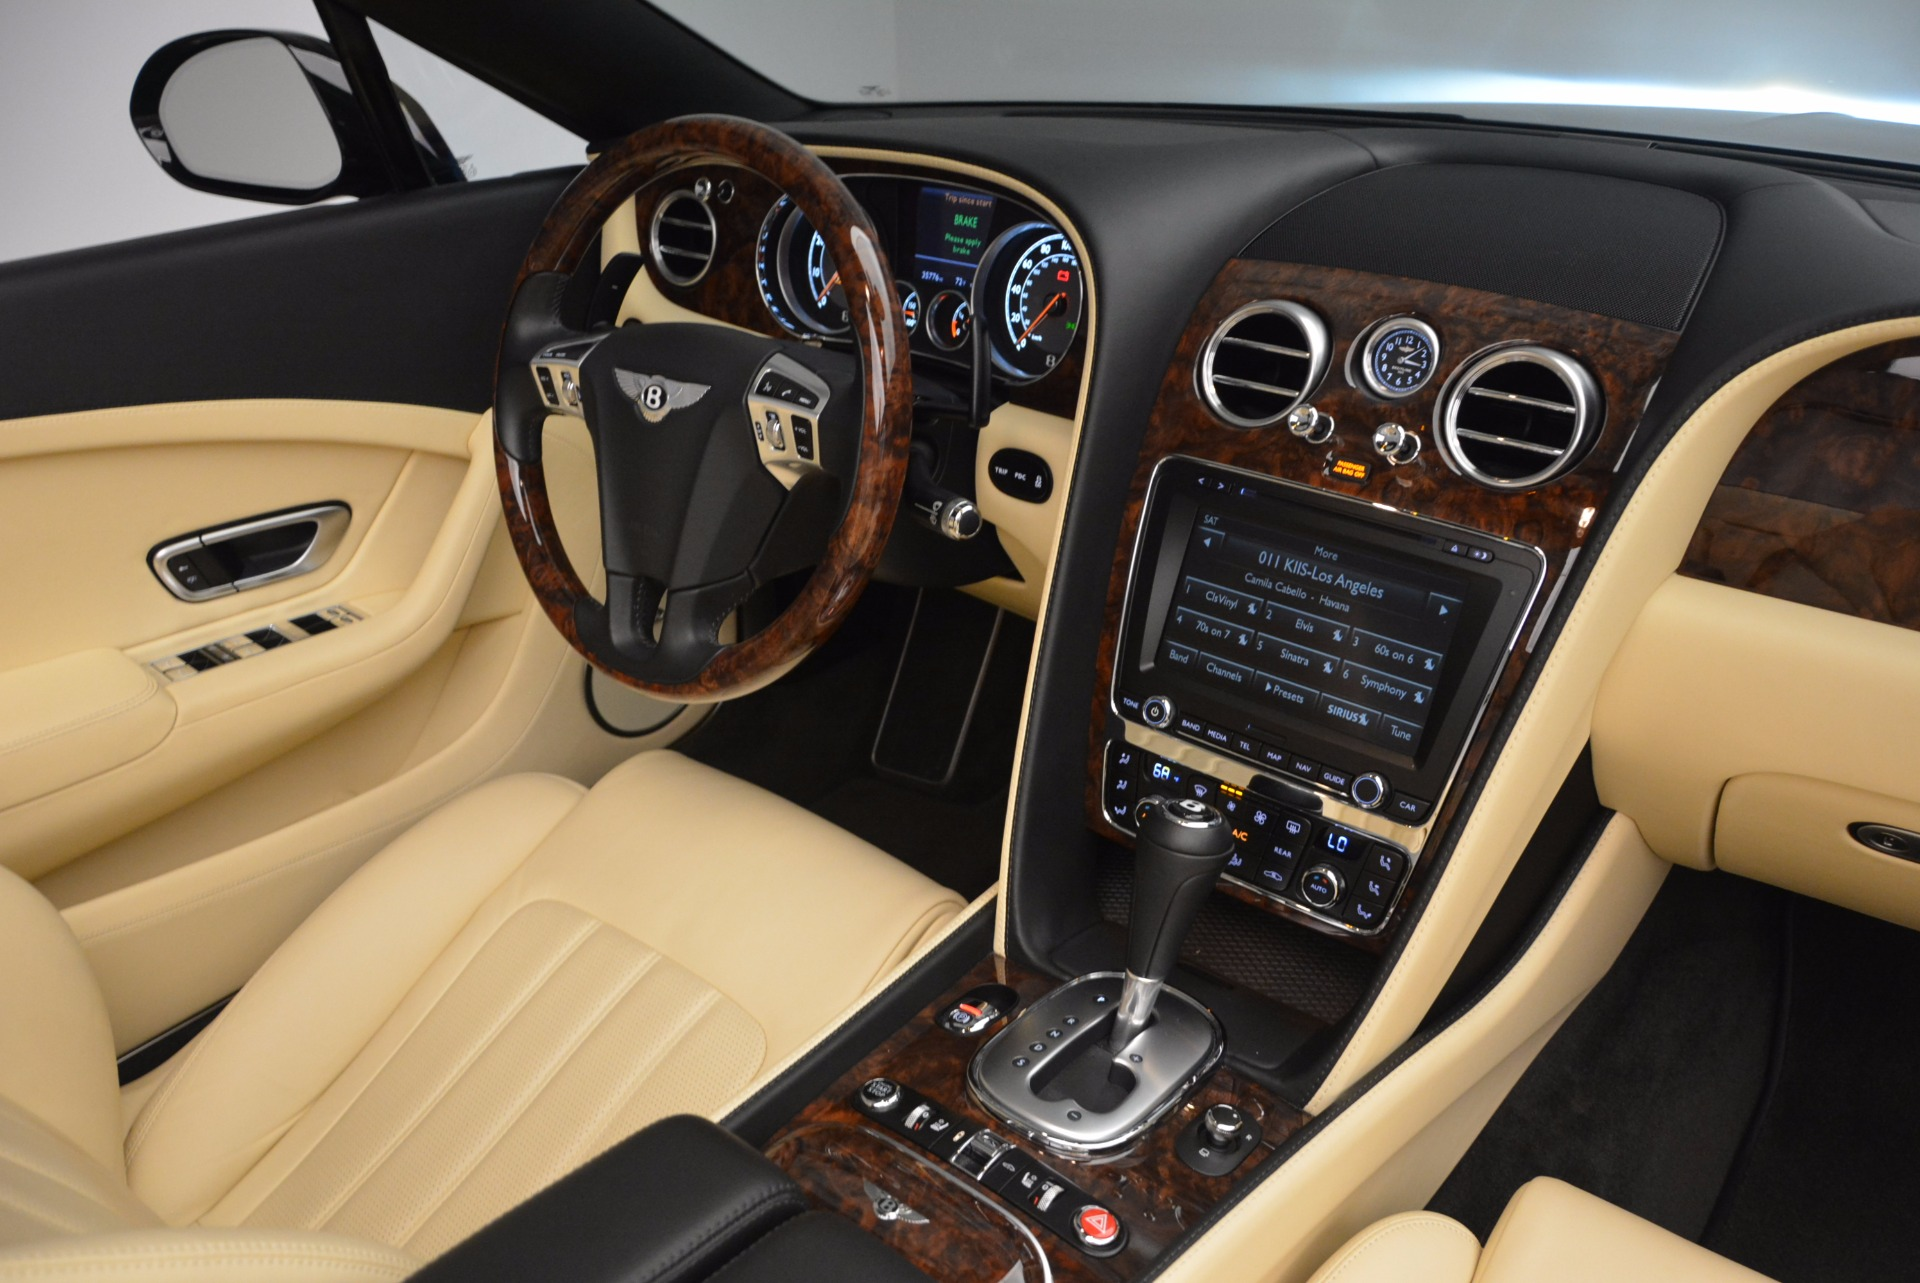 Used 2012 Bentley Continental GT W12 For Sale In Westport, CT 1656_p41